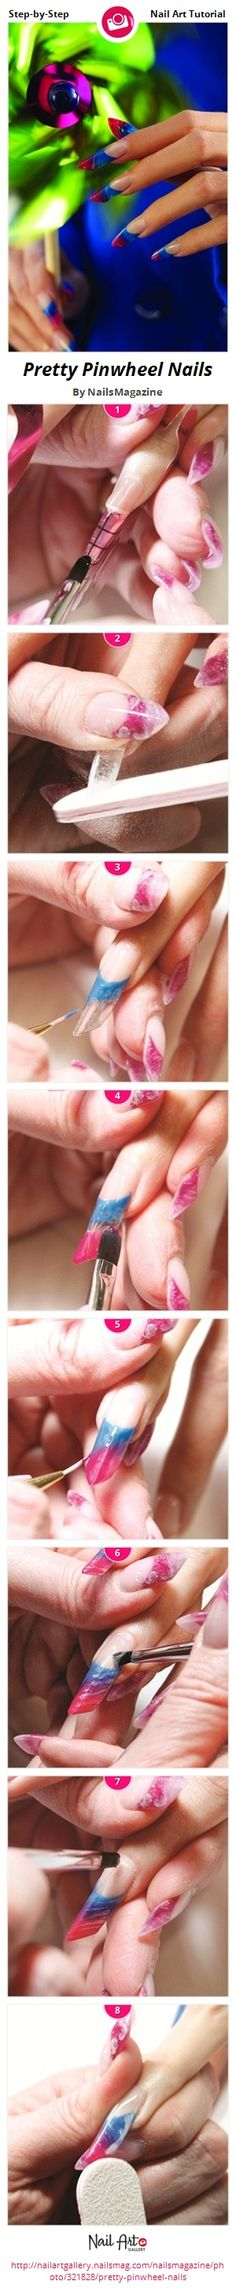 3love these   Nails   Pinterest   Photos, Pretty nails and Nails